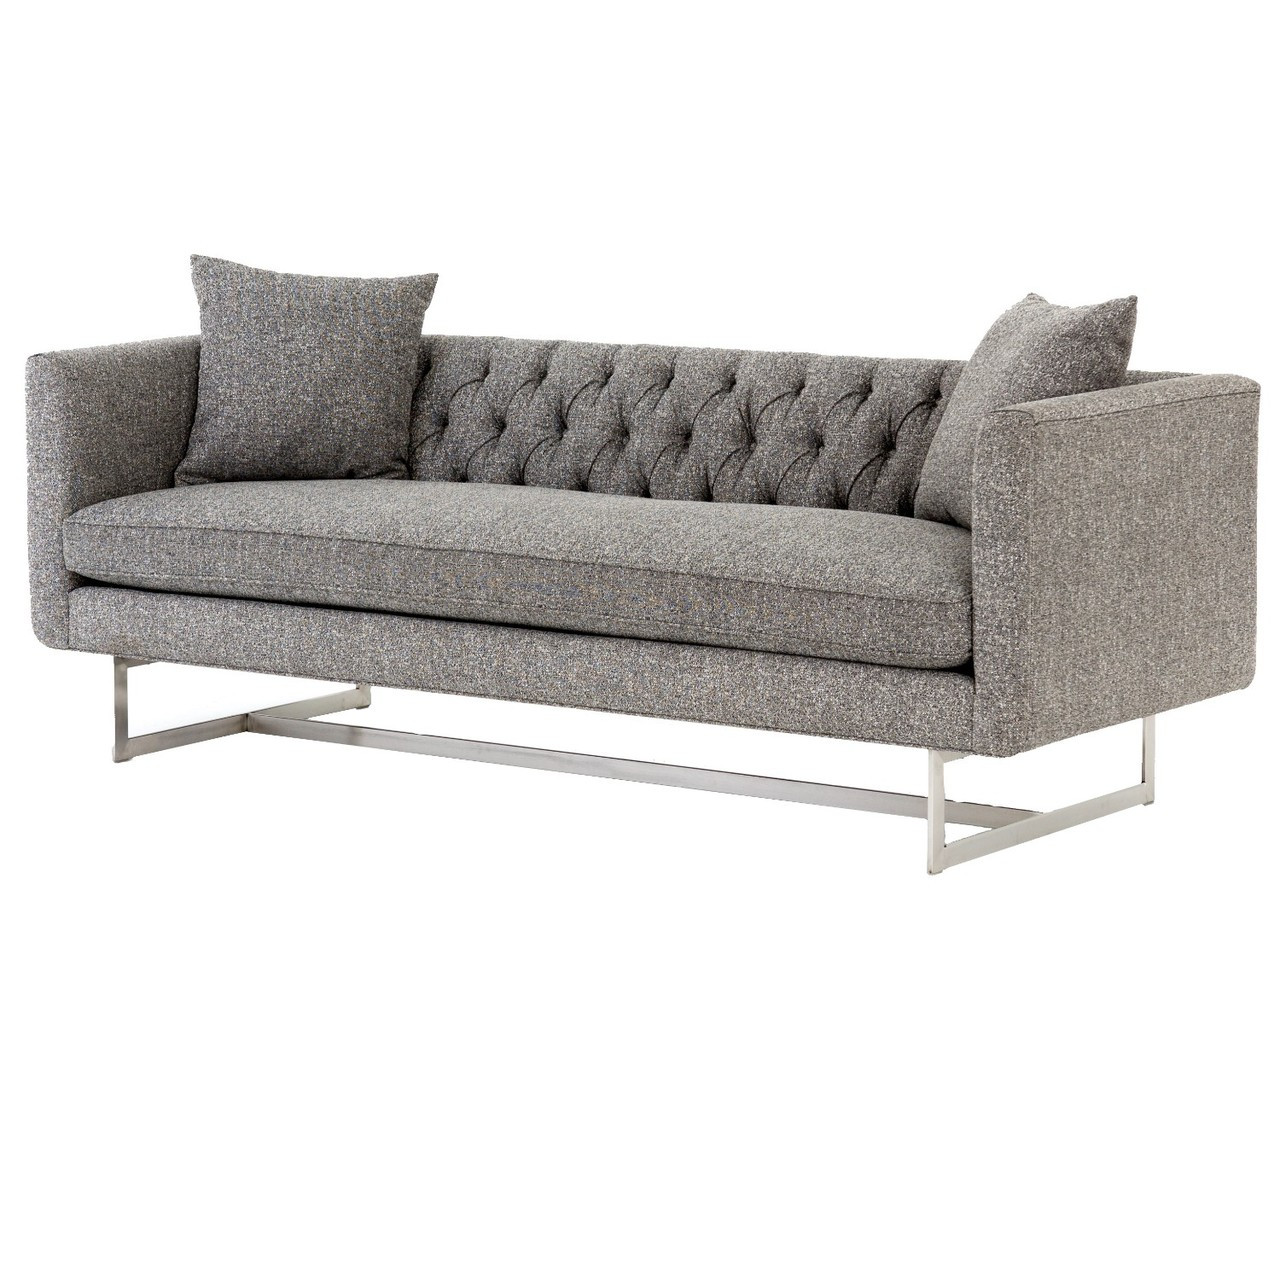 charcoal gray tufted sofa freedom empire review berkshire back grey modern 88 quot zin